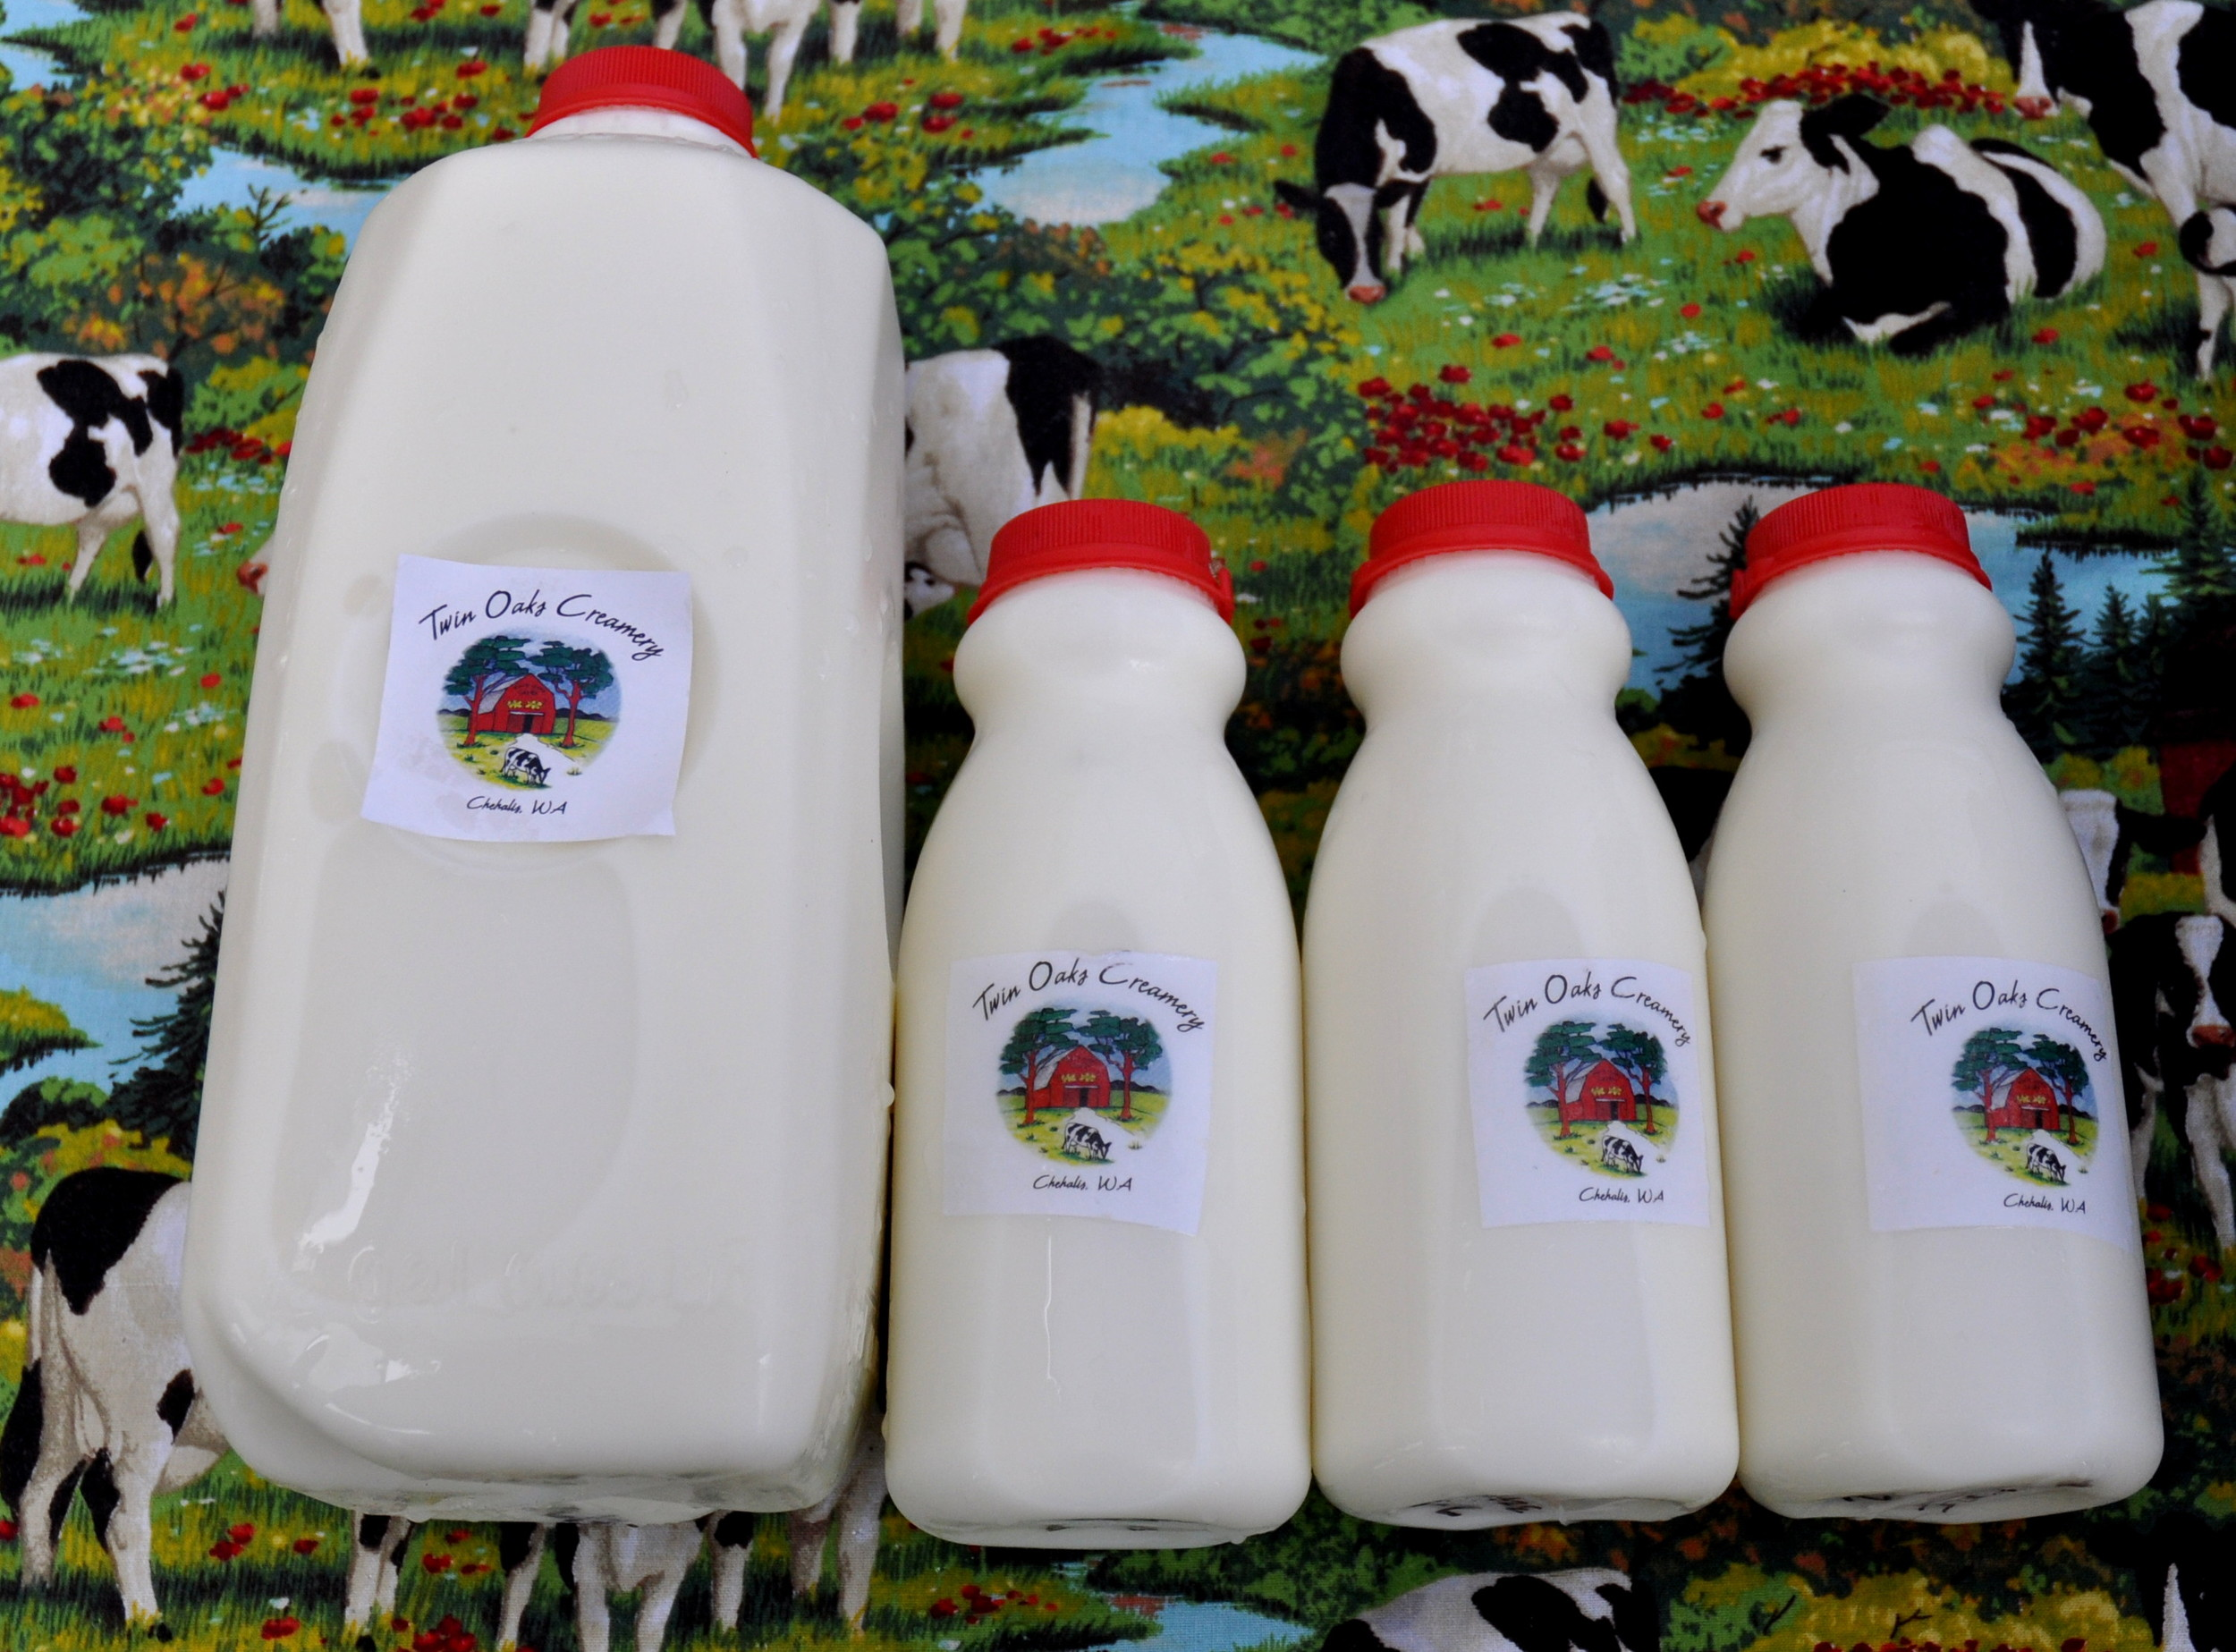 Bottled cows milk from Twin Oaks Creamery. Photo copyright 2013 by Zachary D. Lyons.